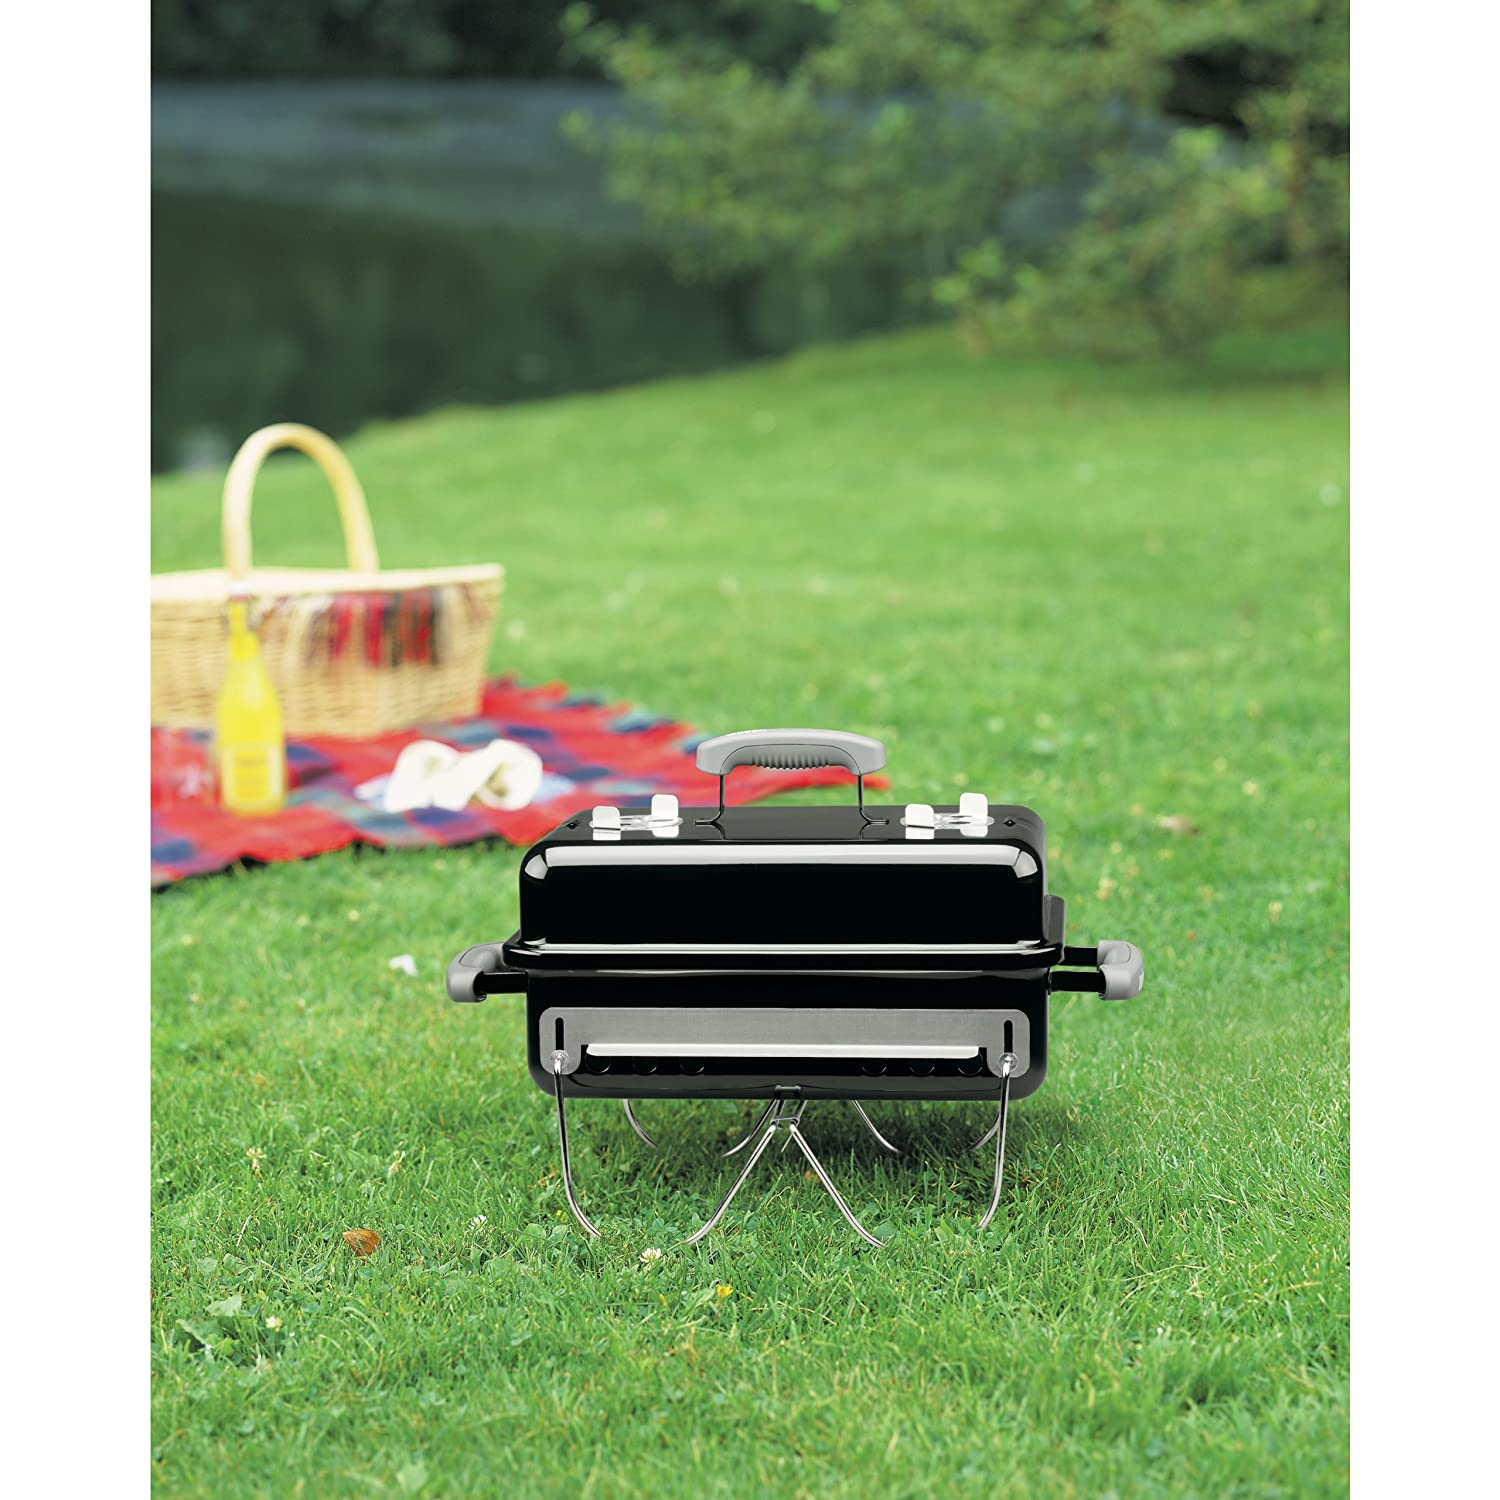 Best Tabletop Charcoal Grill for Camping